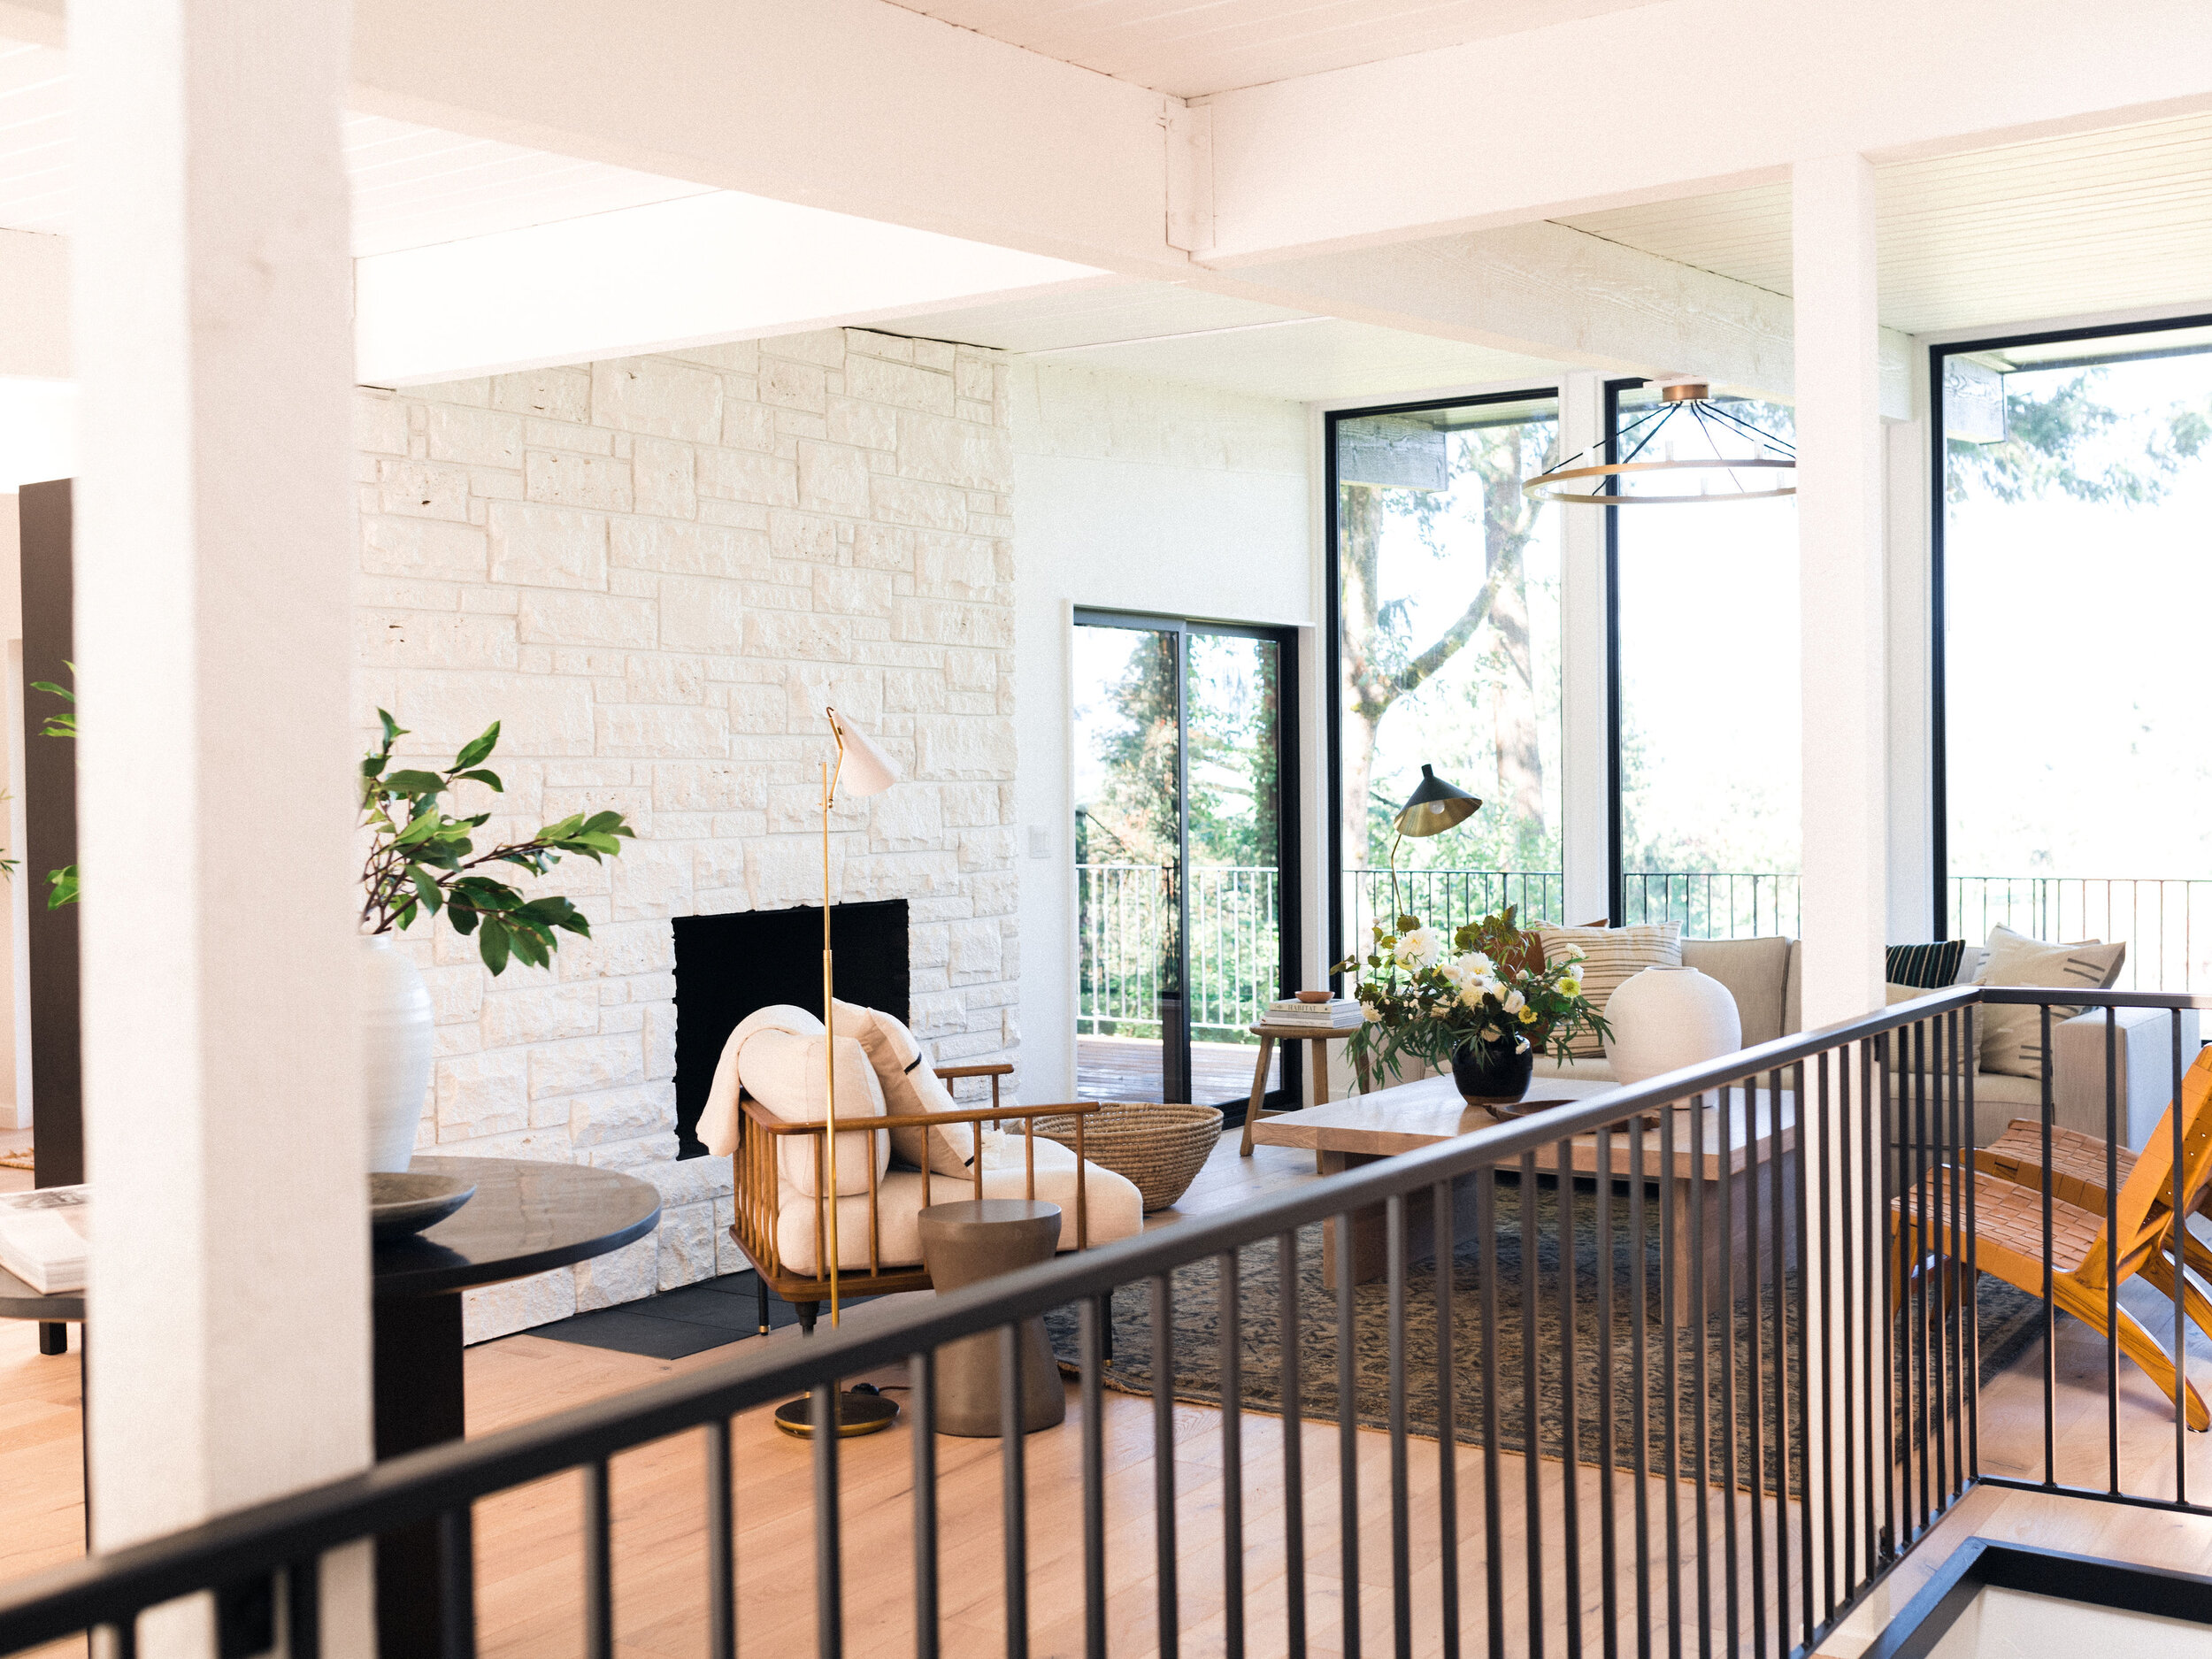 The Baxter Project, nestled in the Pacific Northwest, is surrounded by beautiful, lush greenery. The huge windows help to bring that beauty inside.